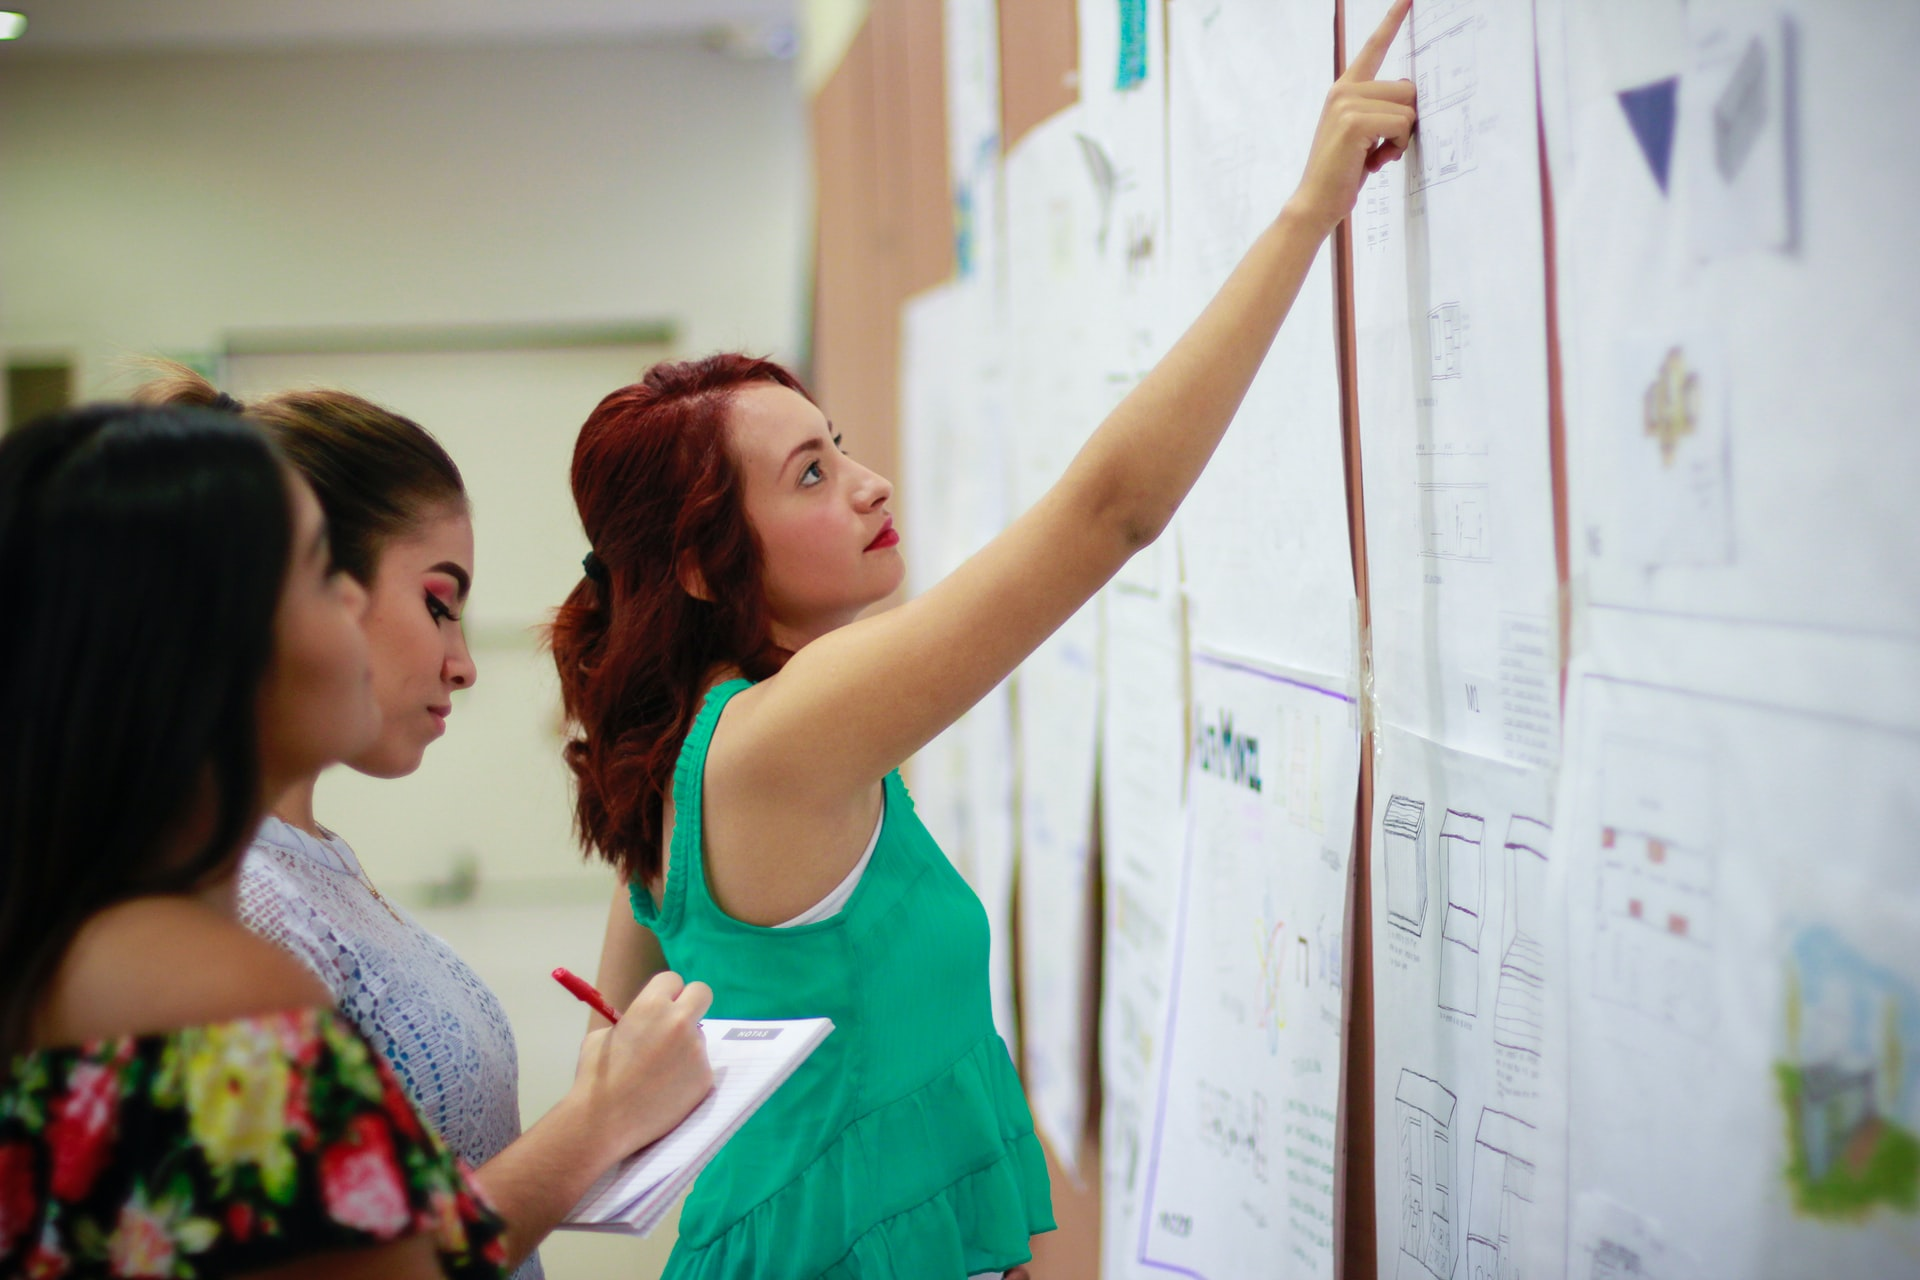 Three women stand in front of a board, one woman with red hair and a green shirt points at a chart while the other two take notes.